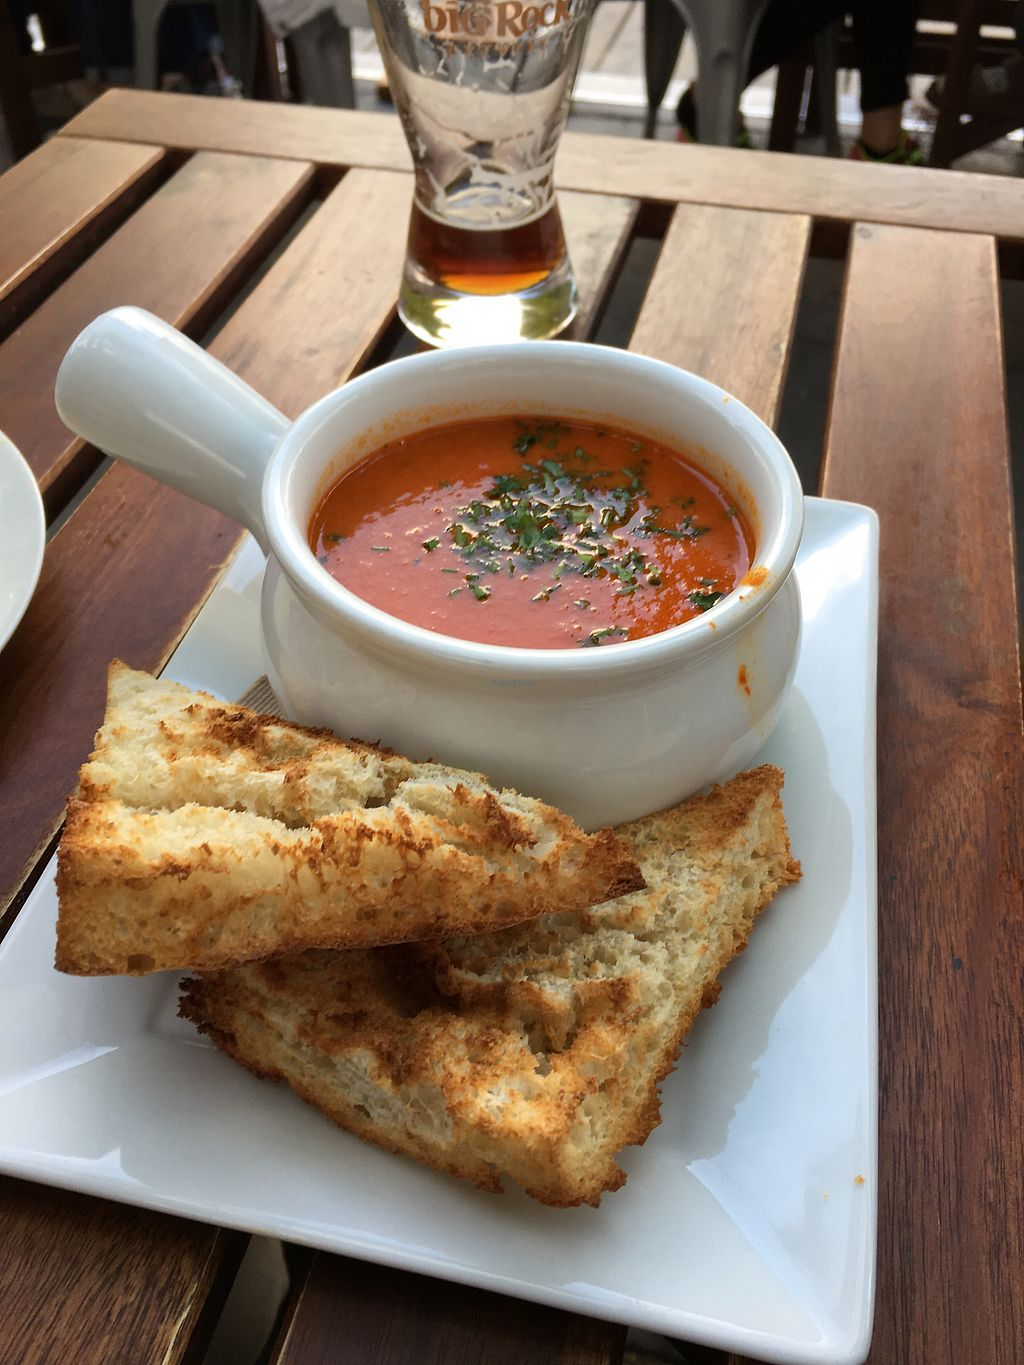 "Photo of Nourish Bistro  by <a href=""/members/profile/dlachica"">dlachica</a> <br/>tomato soup with vegan focaccia  <br/> September 3, 2017  - <a href='/contact/abuse/image/6744/300561'>Report</a>"